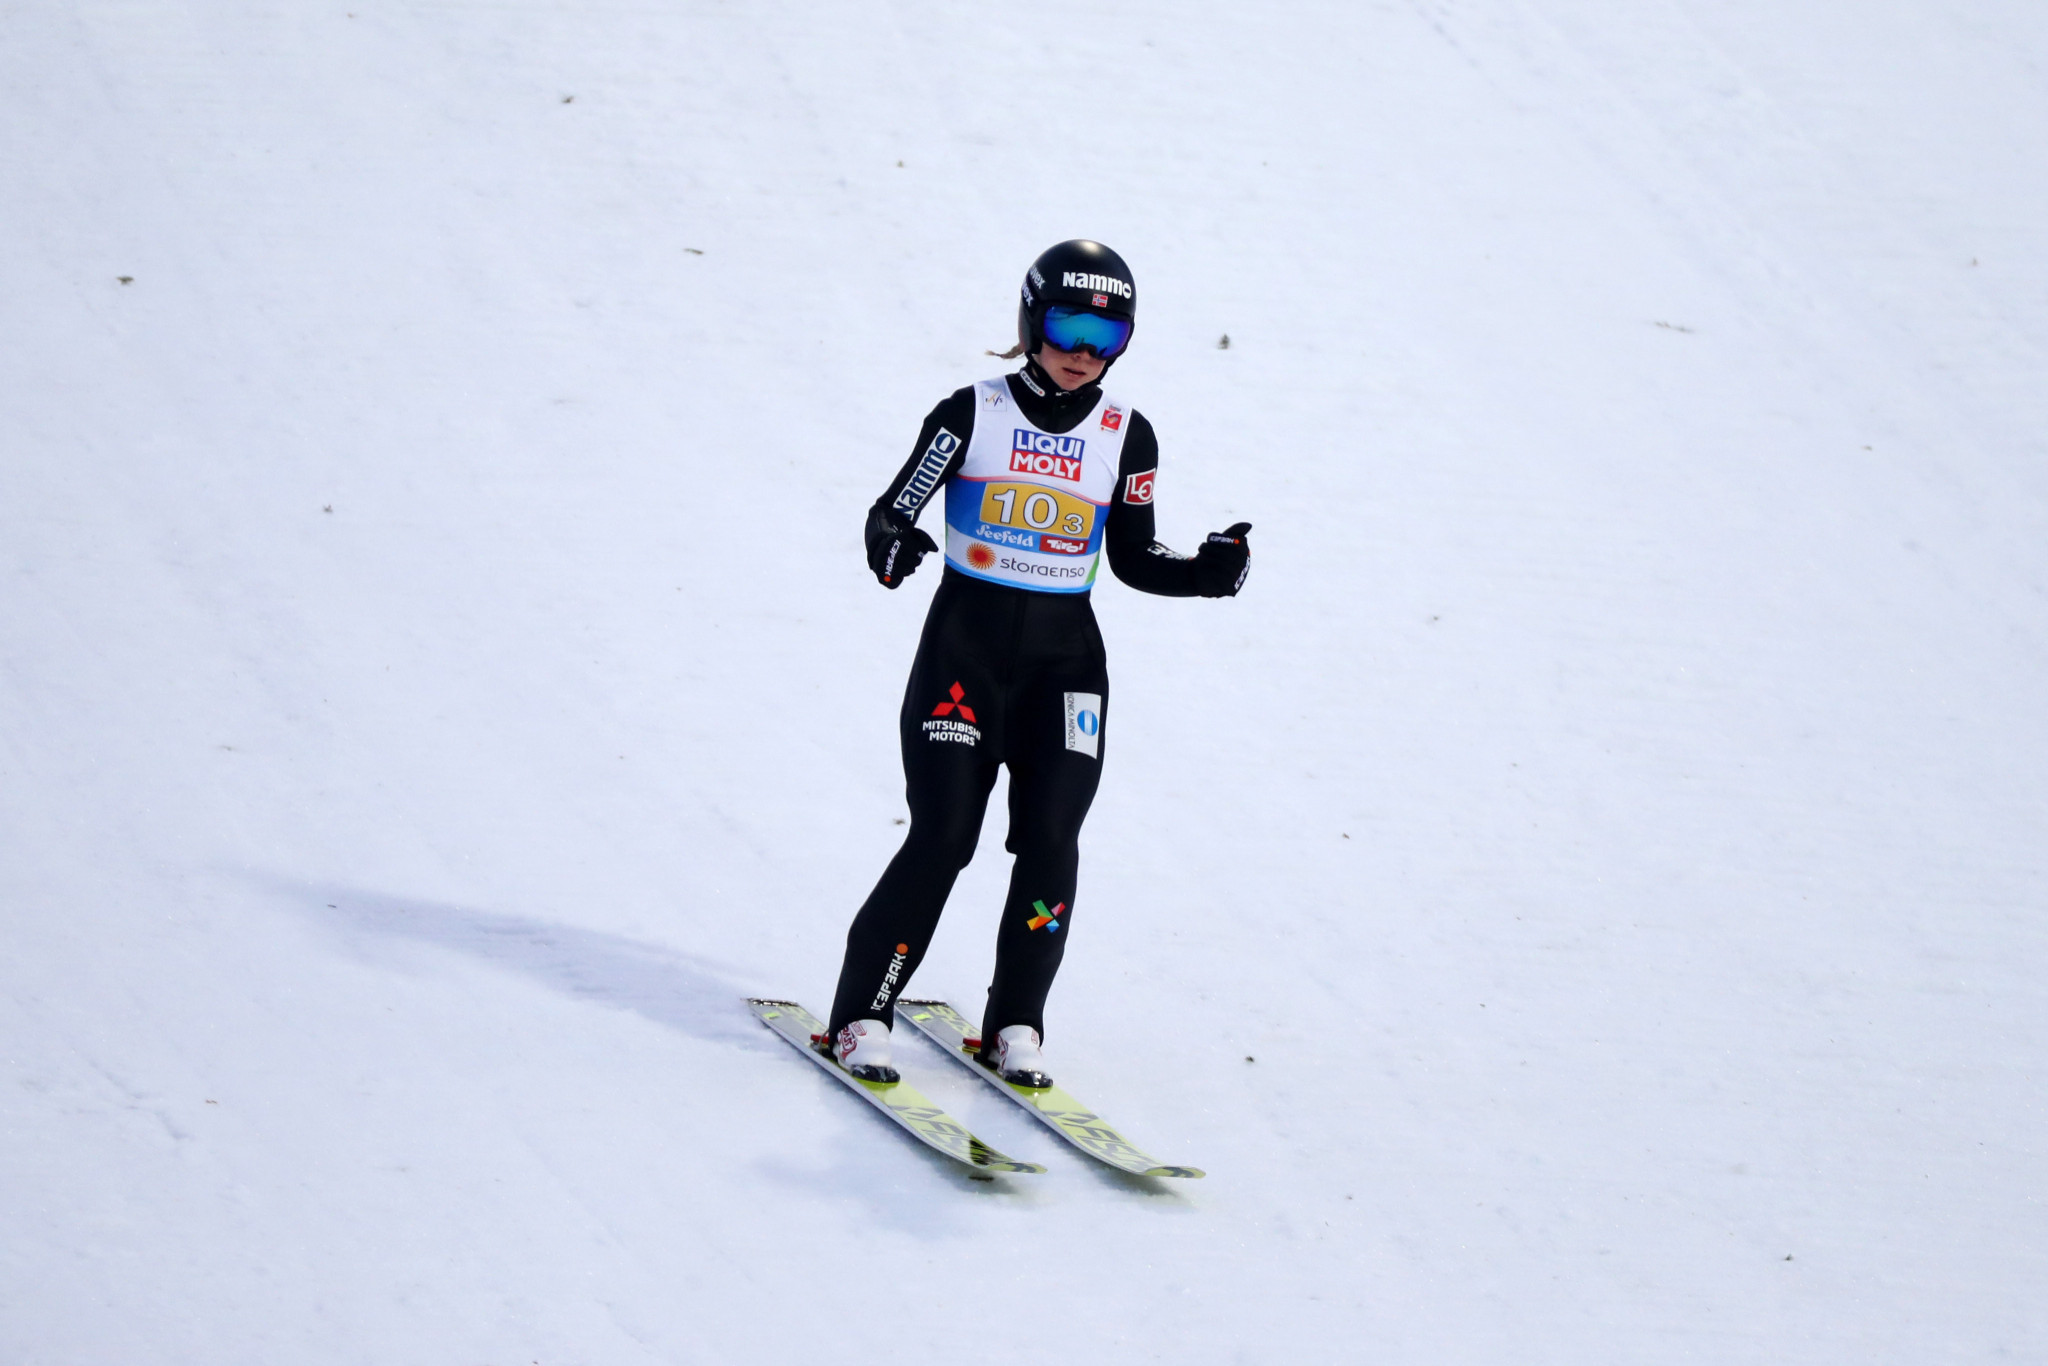 Home favourite Lundby wins again at FIS Ski Jumping World Cup in Lillehammer